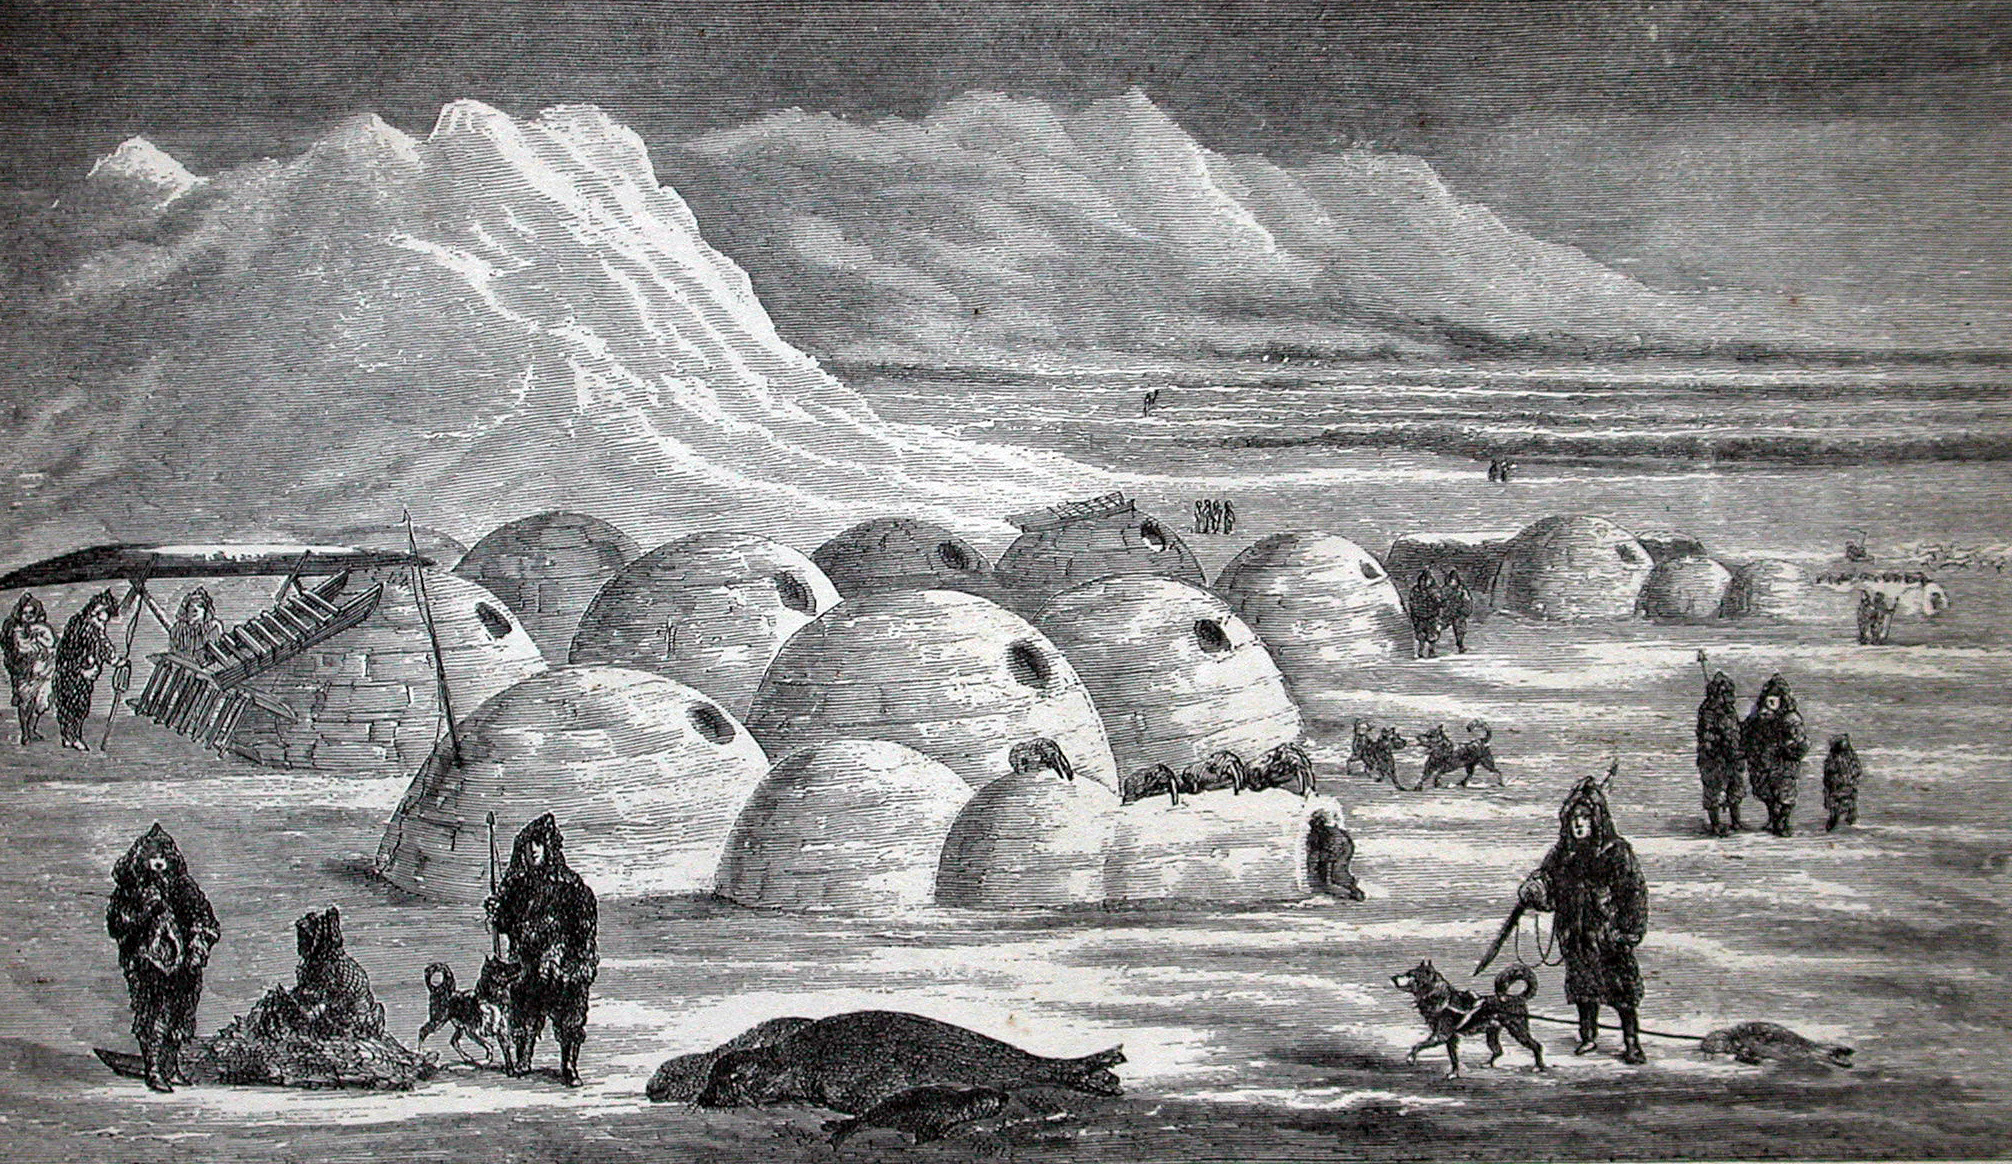 Old illustration of Inuit village life